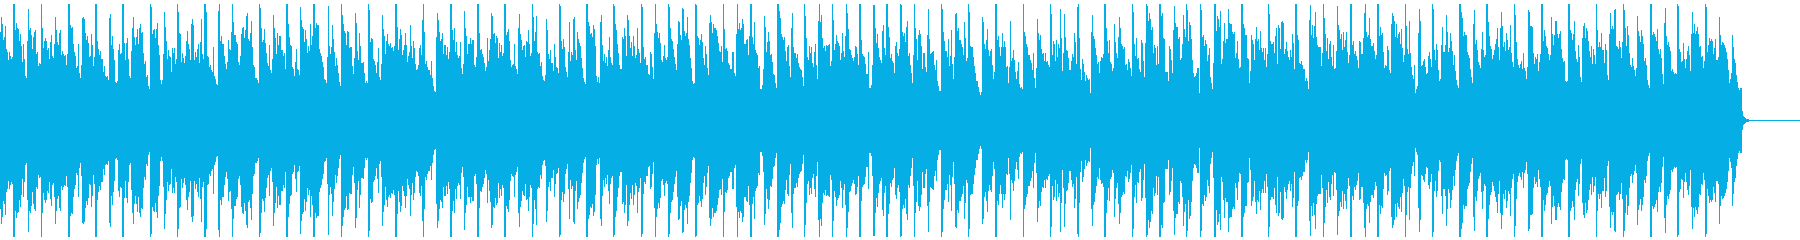 Handel's arrangement for the award ceremony's reproduced waveform